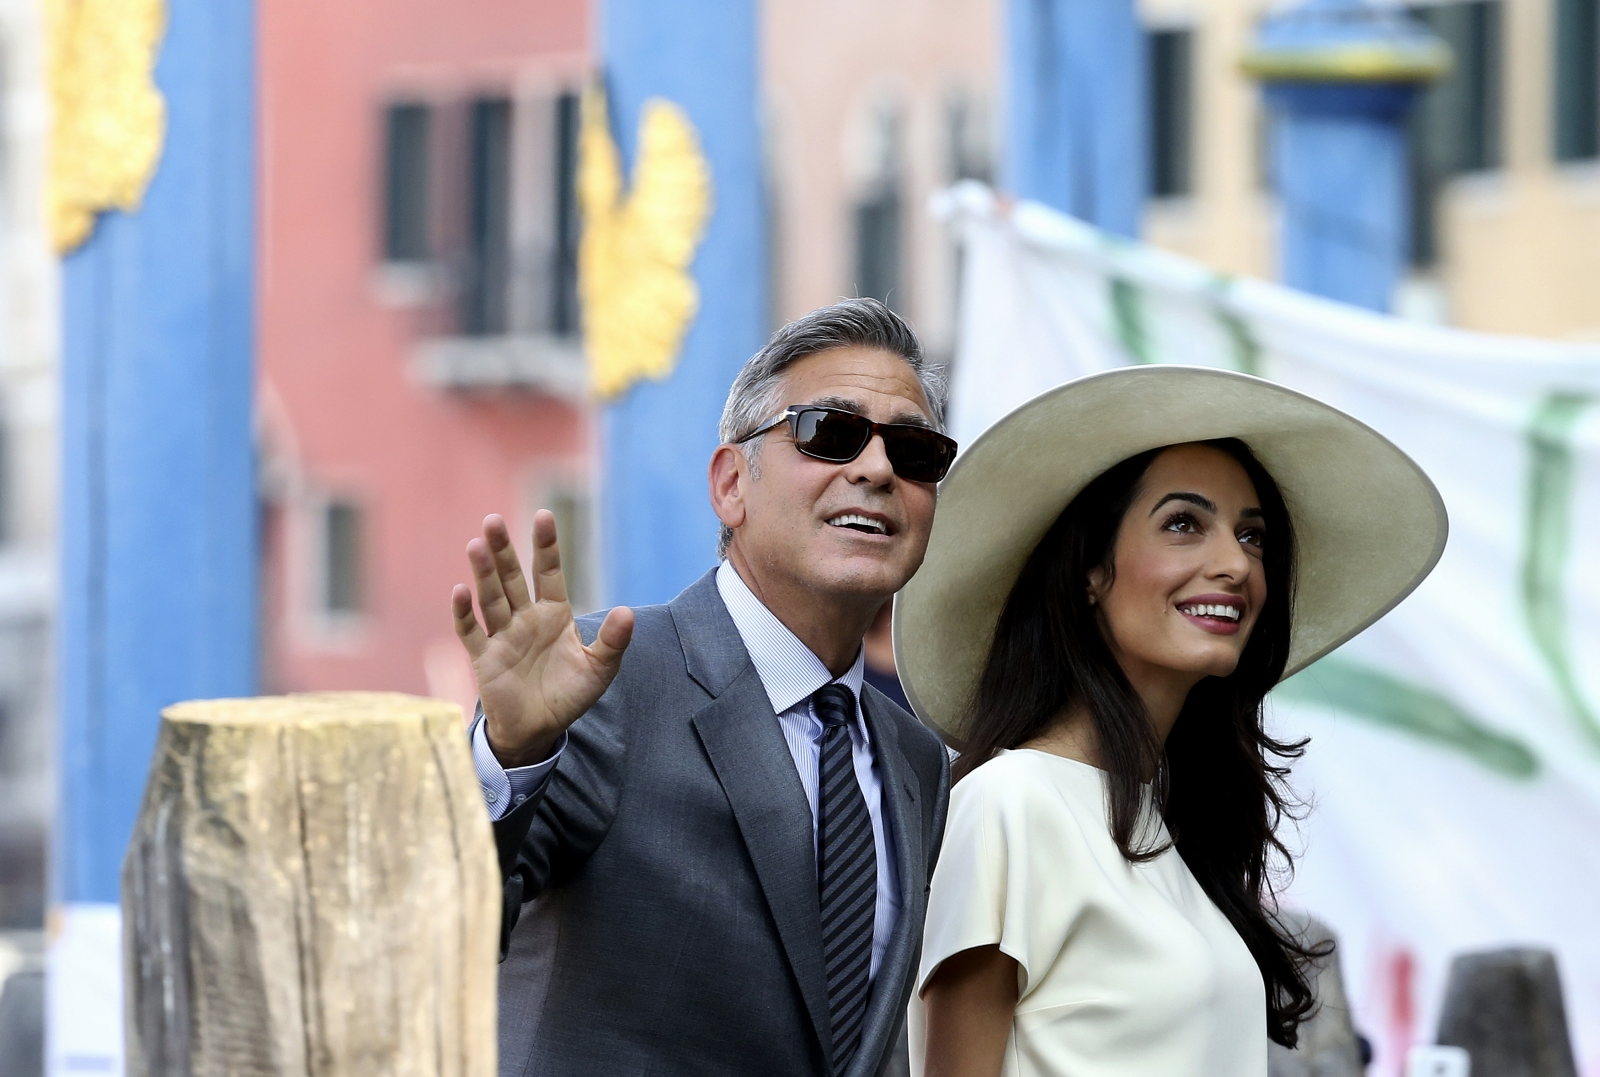 George Clooney and his wife Amal Alamuddin arrive at Venice city hall for a civil ceremony to formalise their wedding in Venice on 29 September, 2014